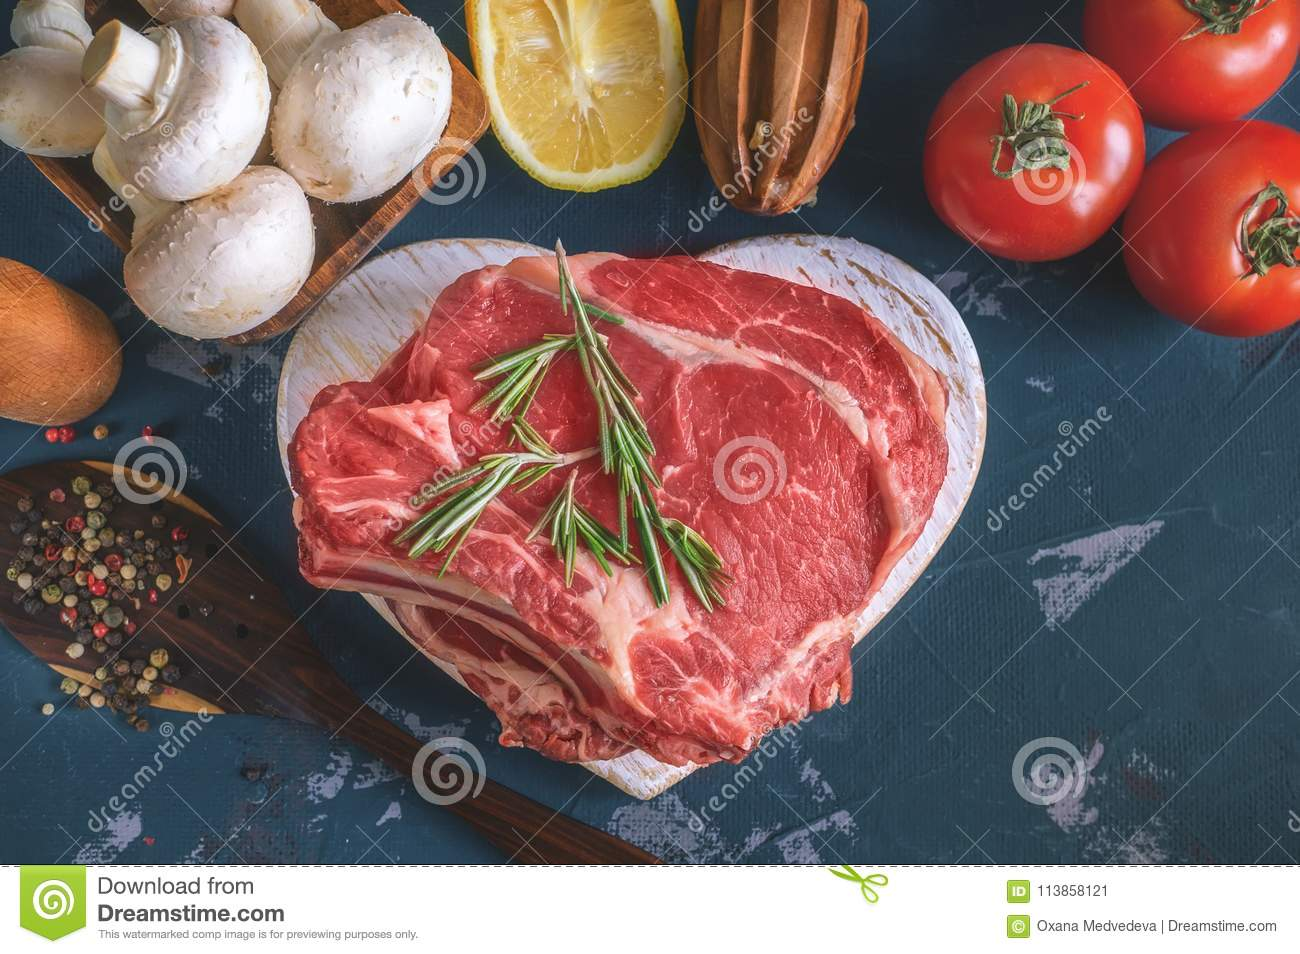 Cuts of beef for grilling on a wooden cutting Board with the Bay leaf, rosemary, olive oil and Provencal herbs for the